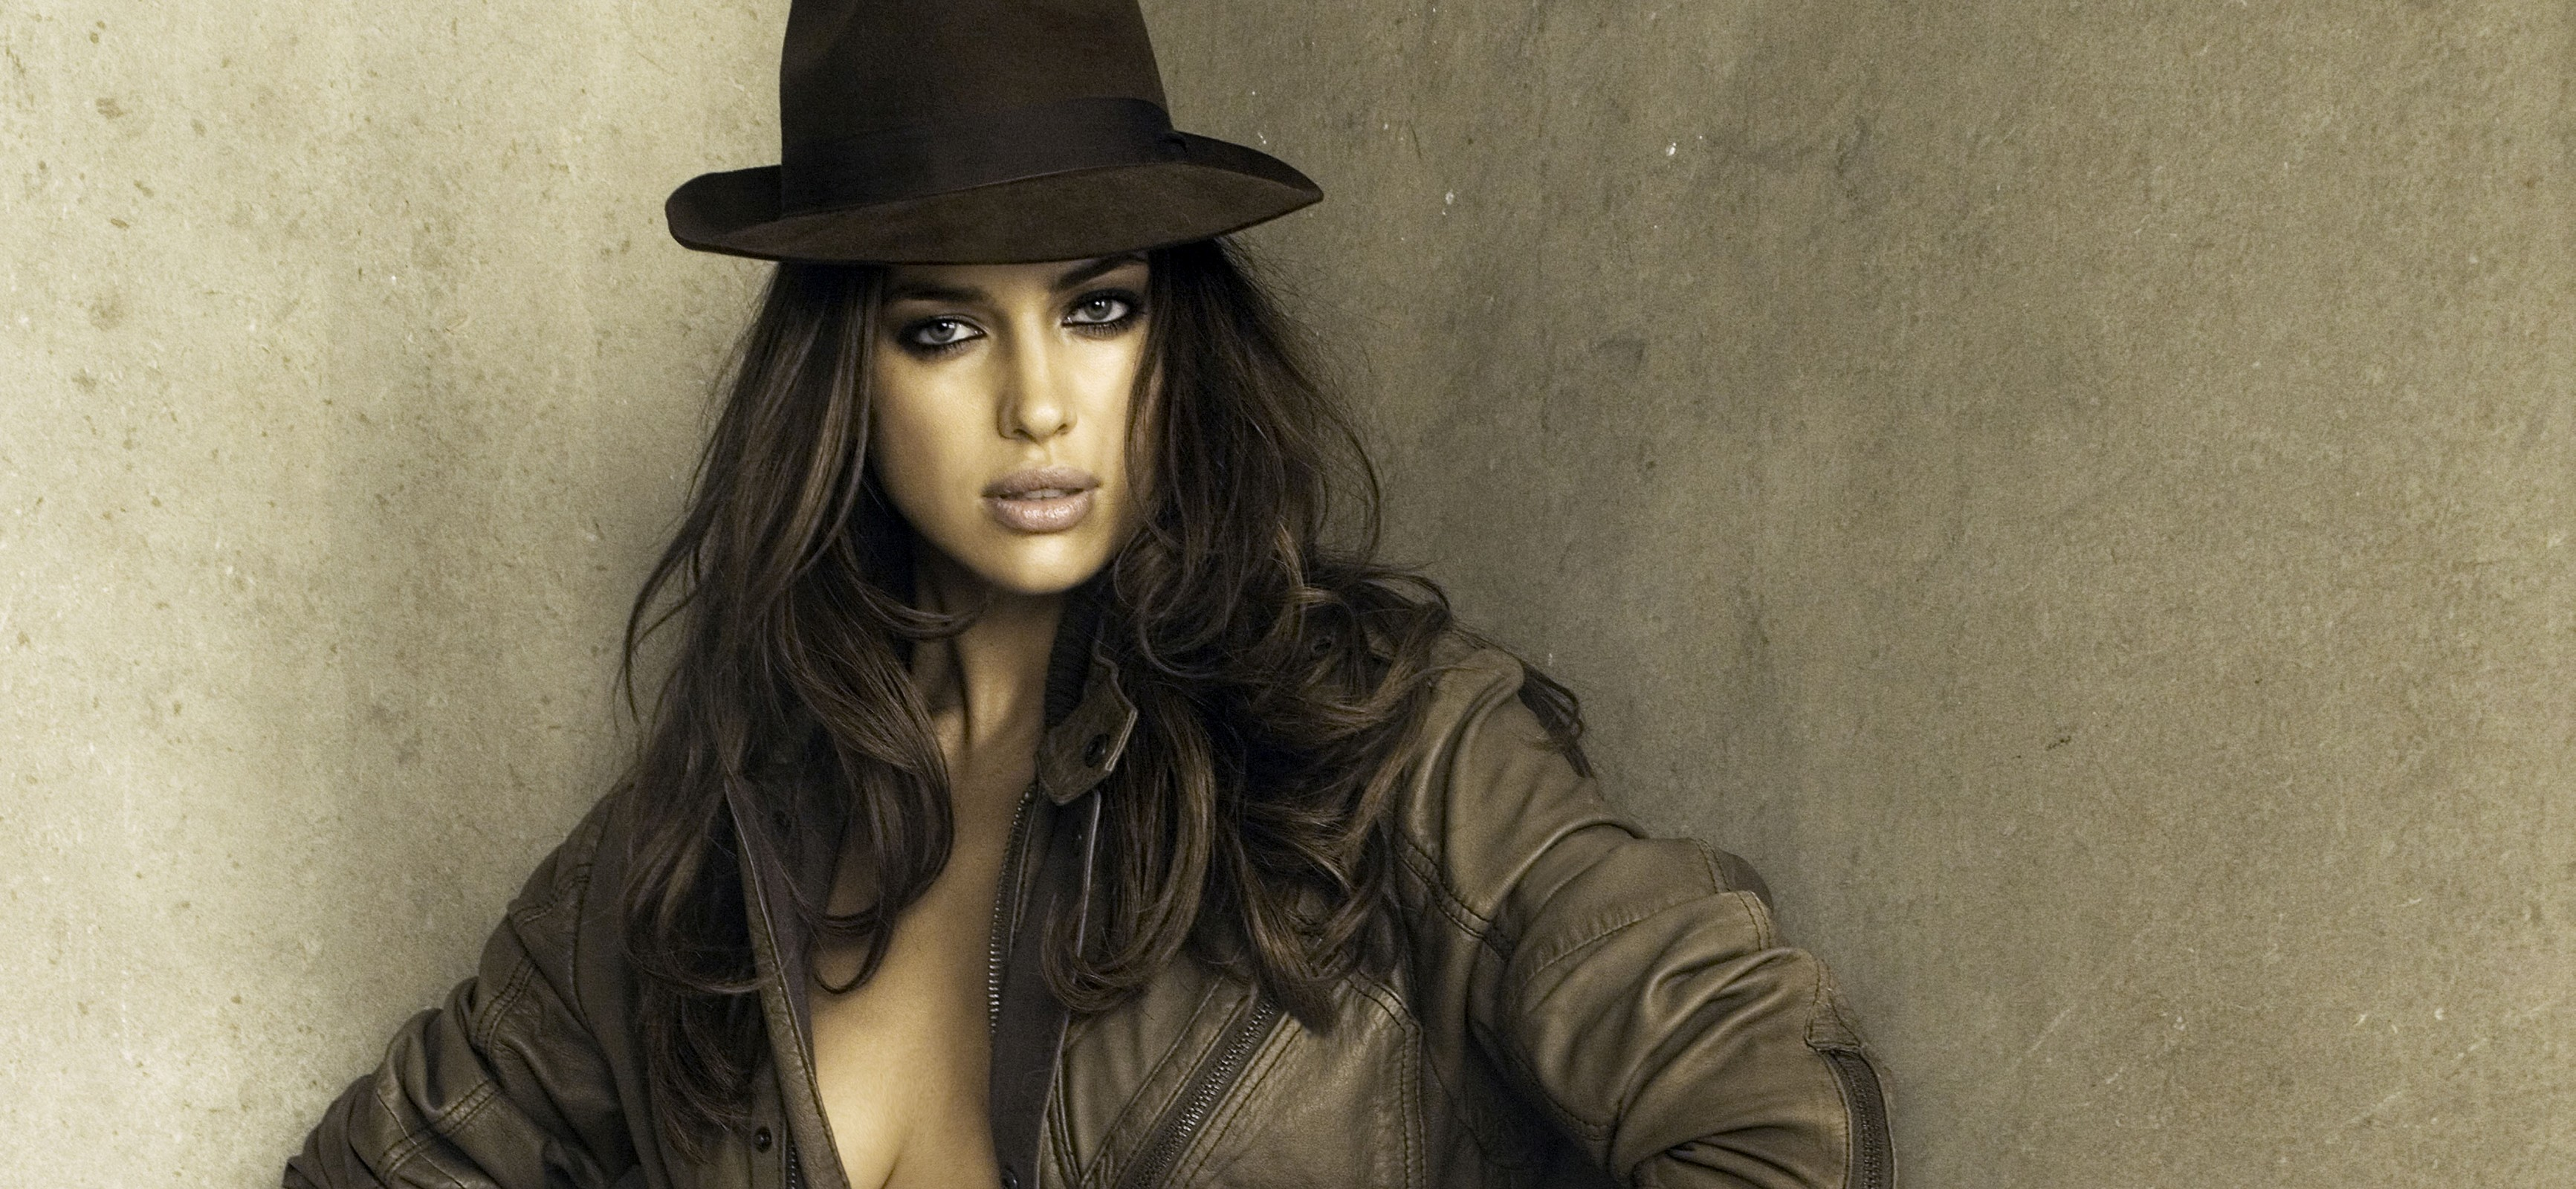 woman models irina shayk HD Wallpaper